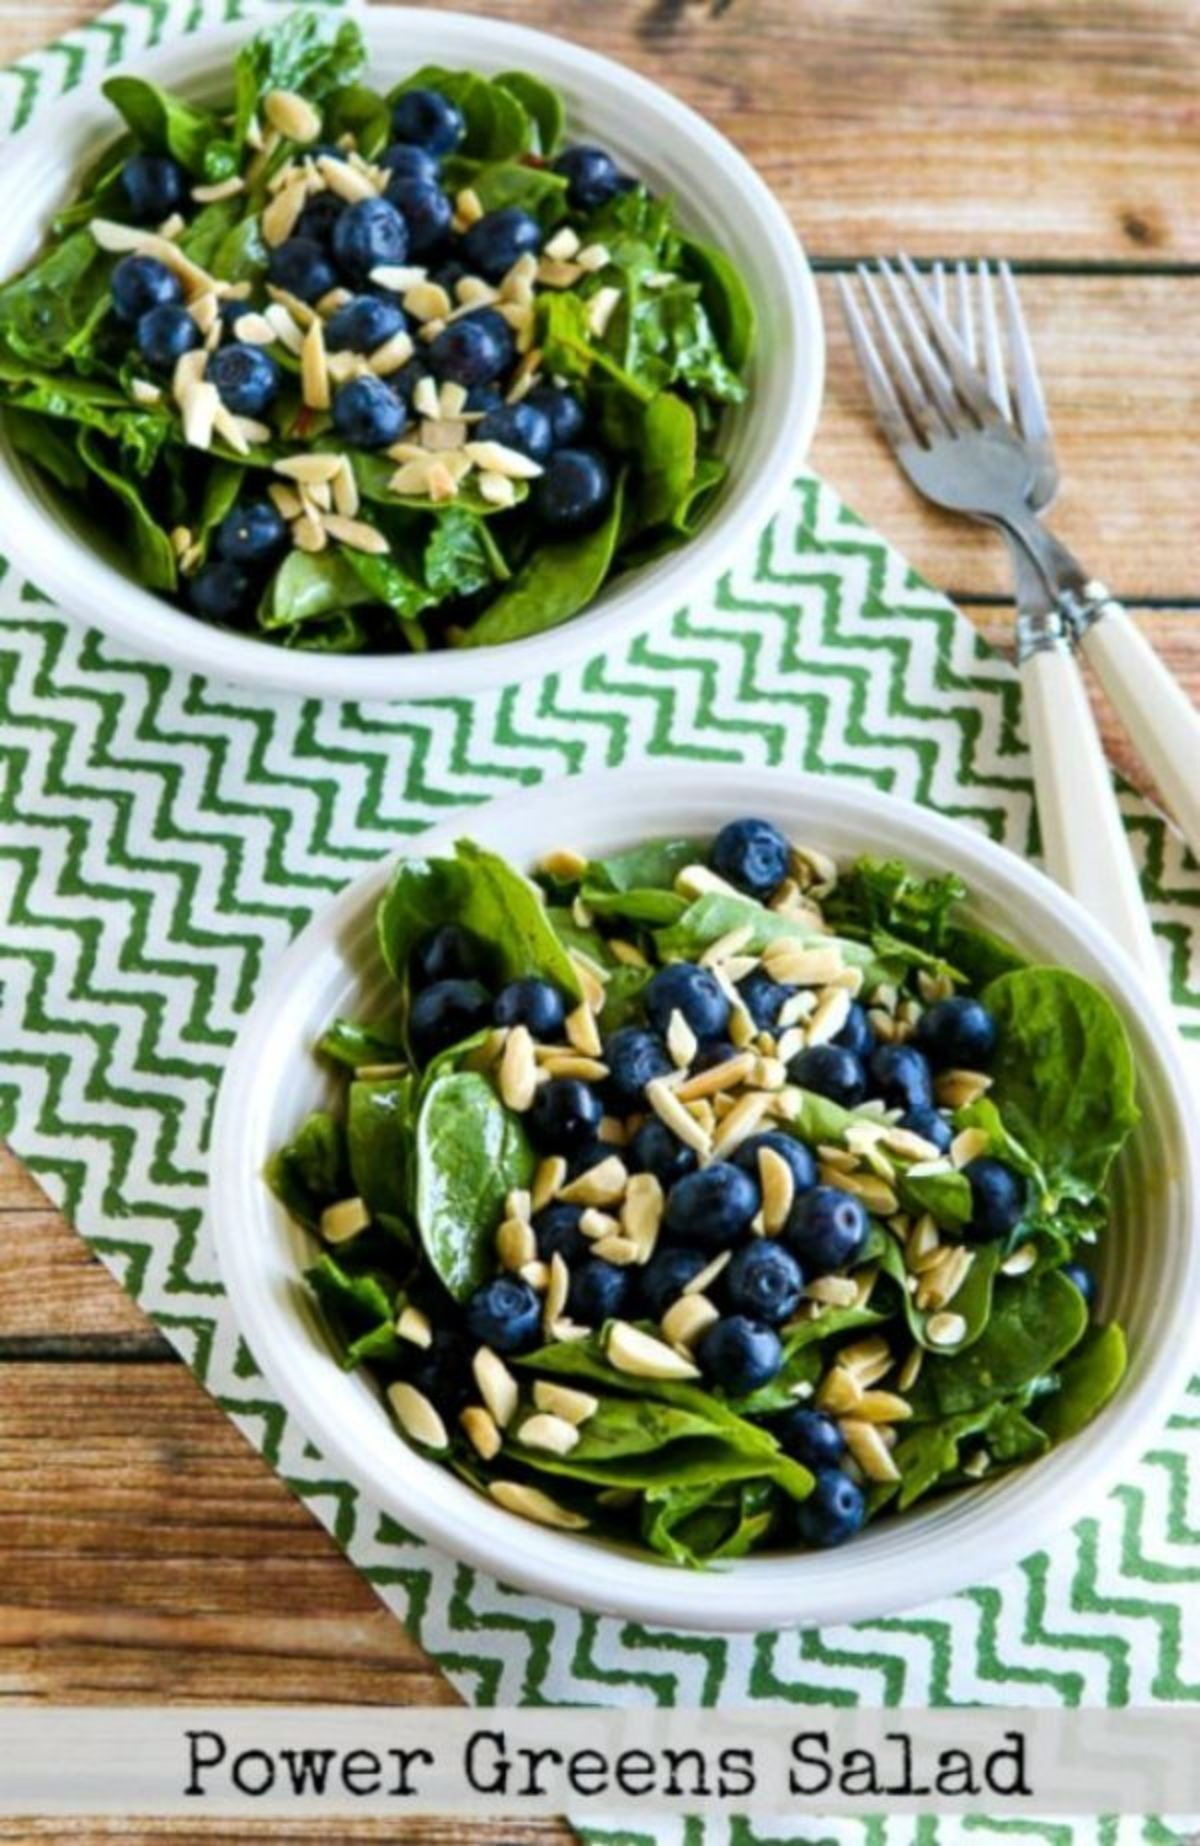 2 white bowls of green leaves, blueberries and chopped nuts, 2 forks by the side